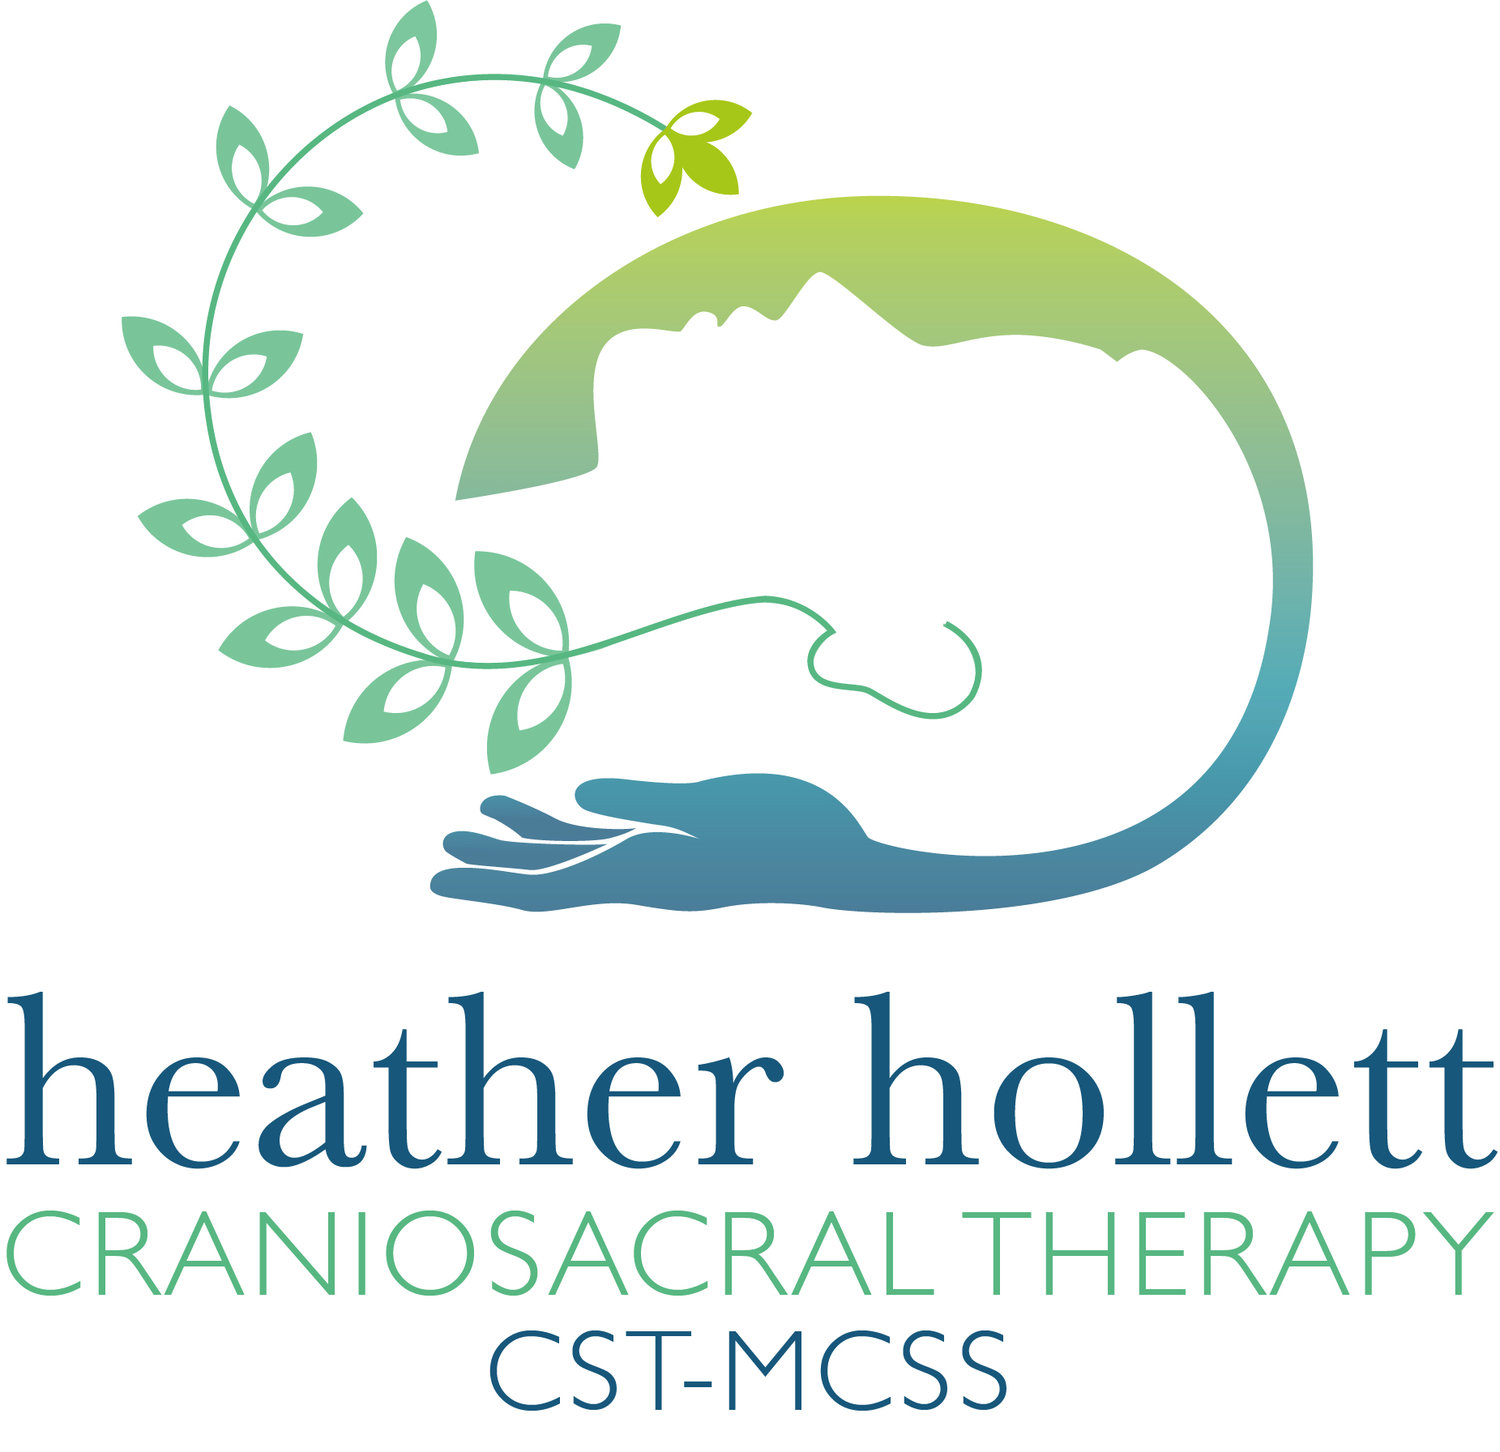 Heather Hollett CranioSacral Therapy